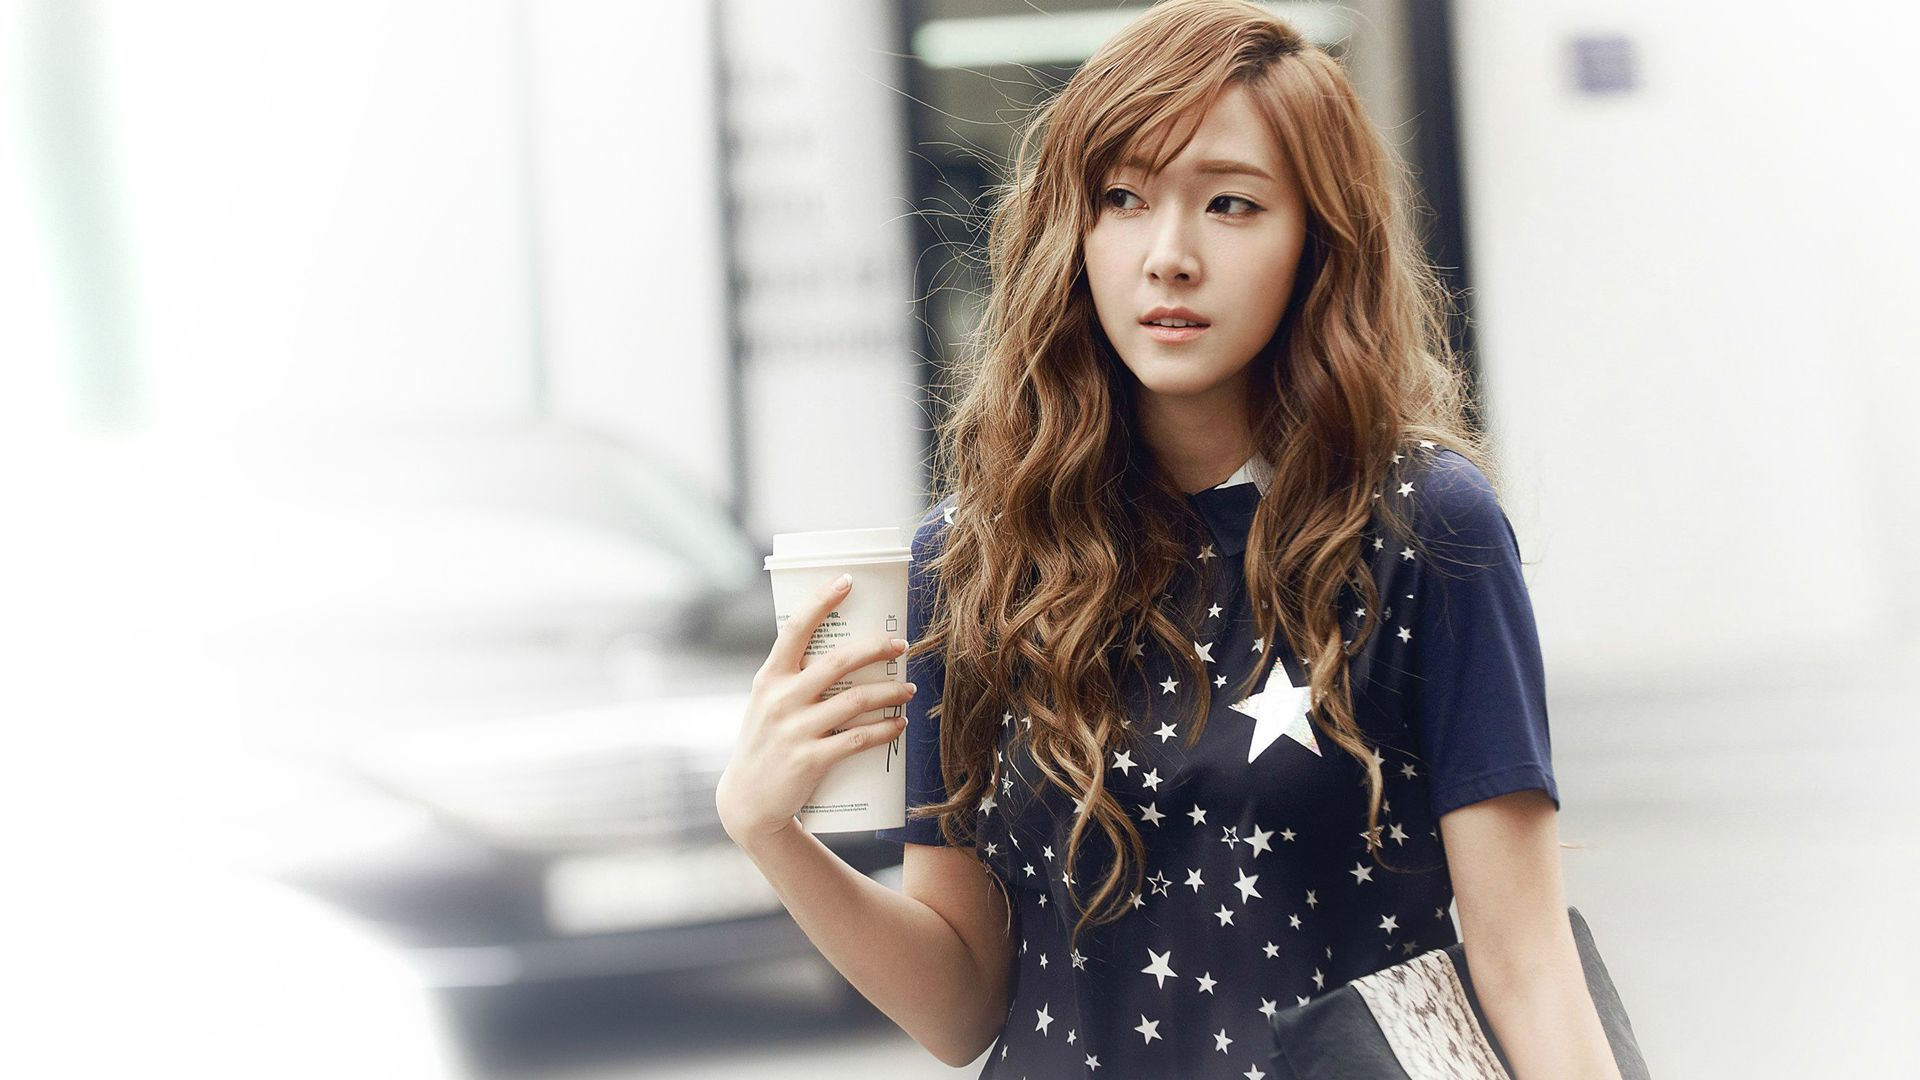 jessica jung wallpaper 55760